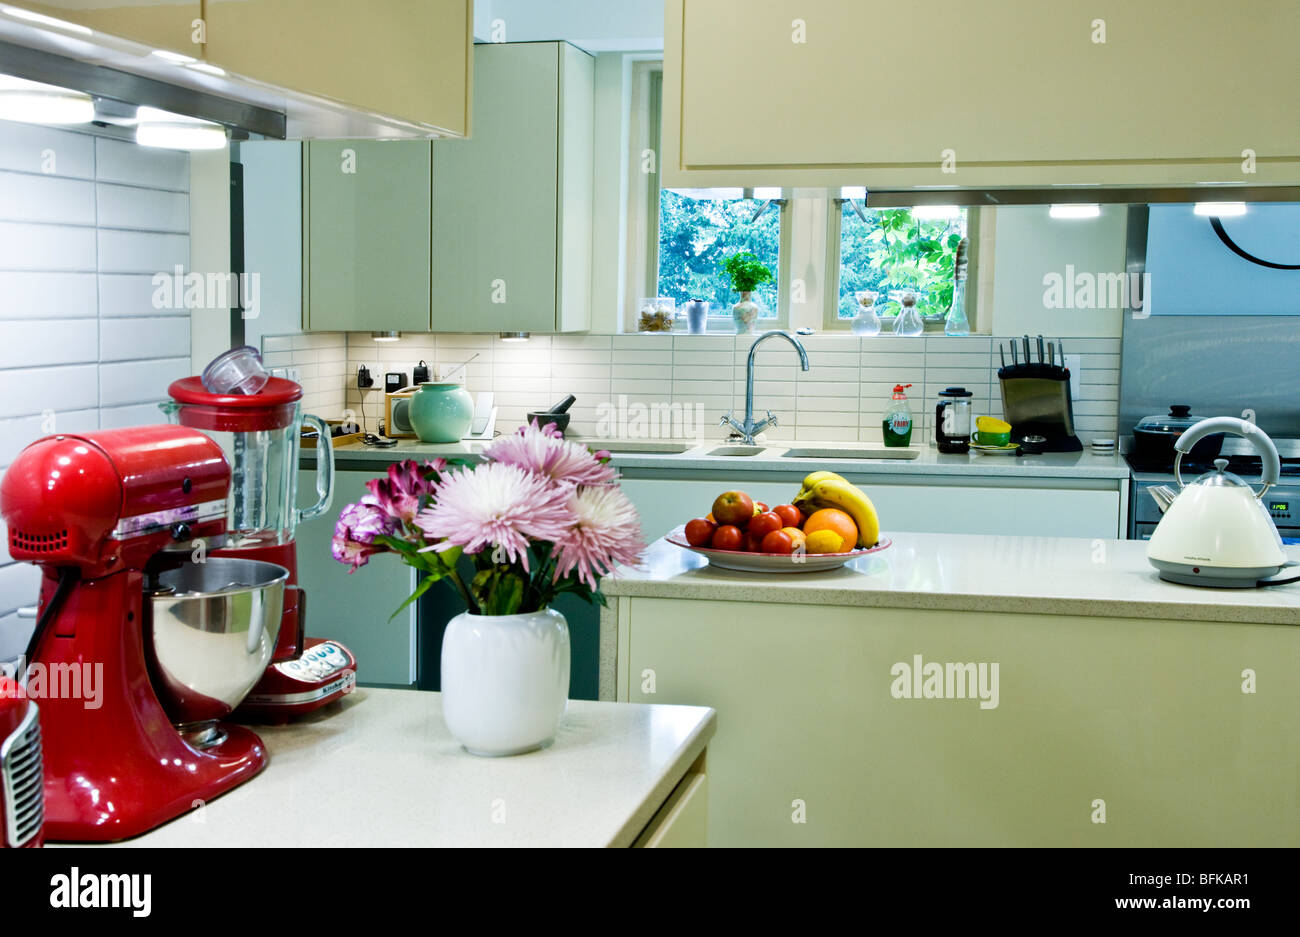 Kitchen Appliances Retro Stock Photos & Kitchen Appliances Retro ...